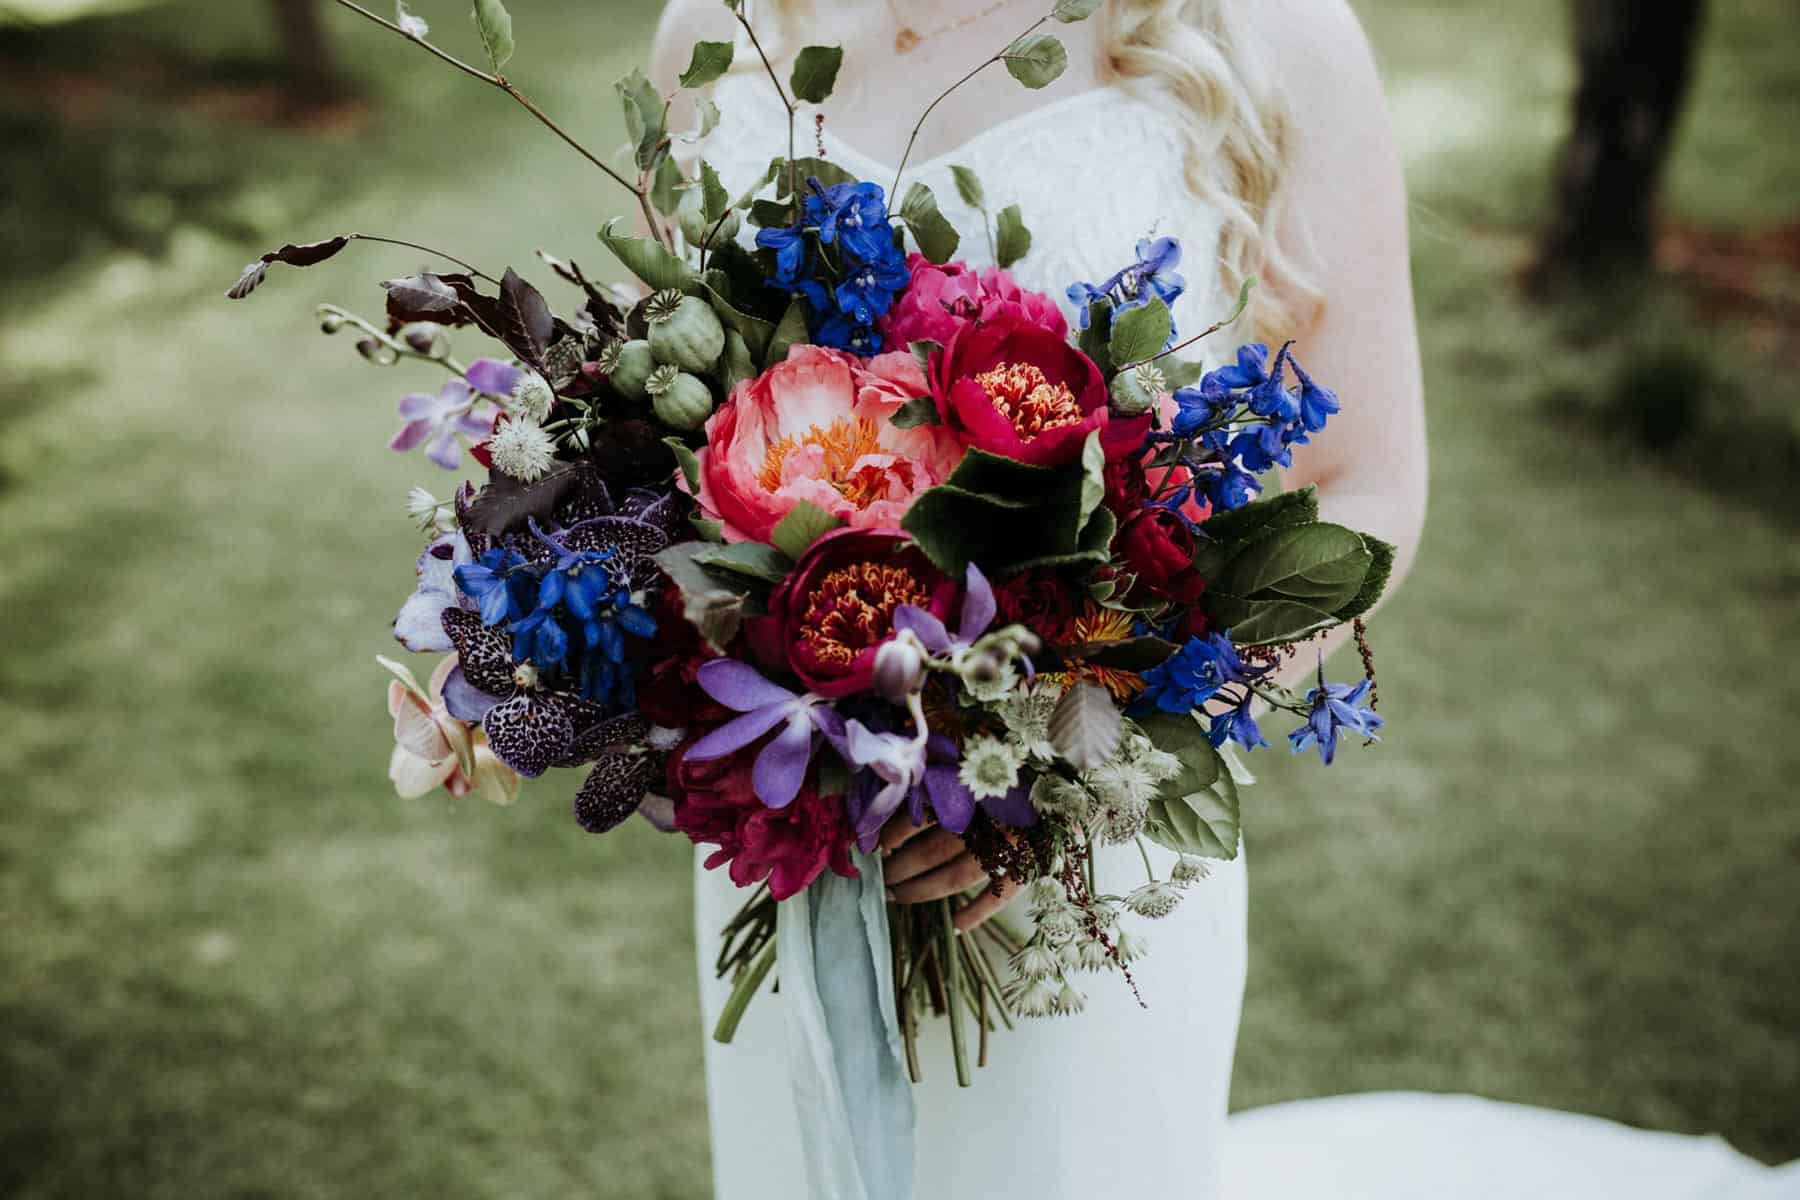 Jewel Toned Bridal Bouquet Nouba Com Au Jewel Toned Bridal Bouquet